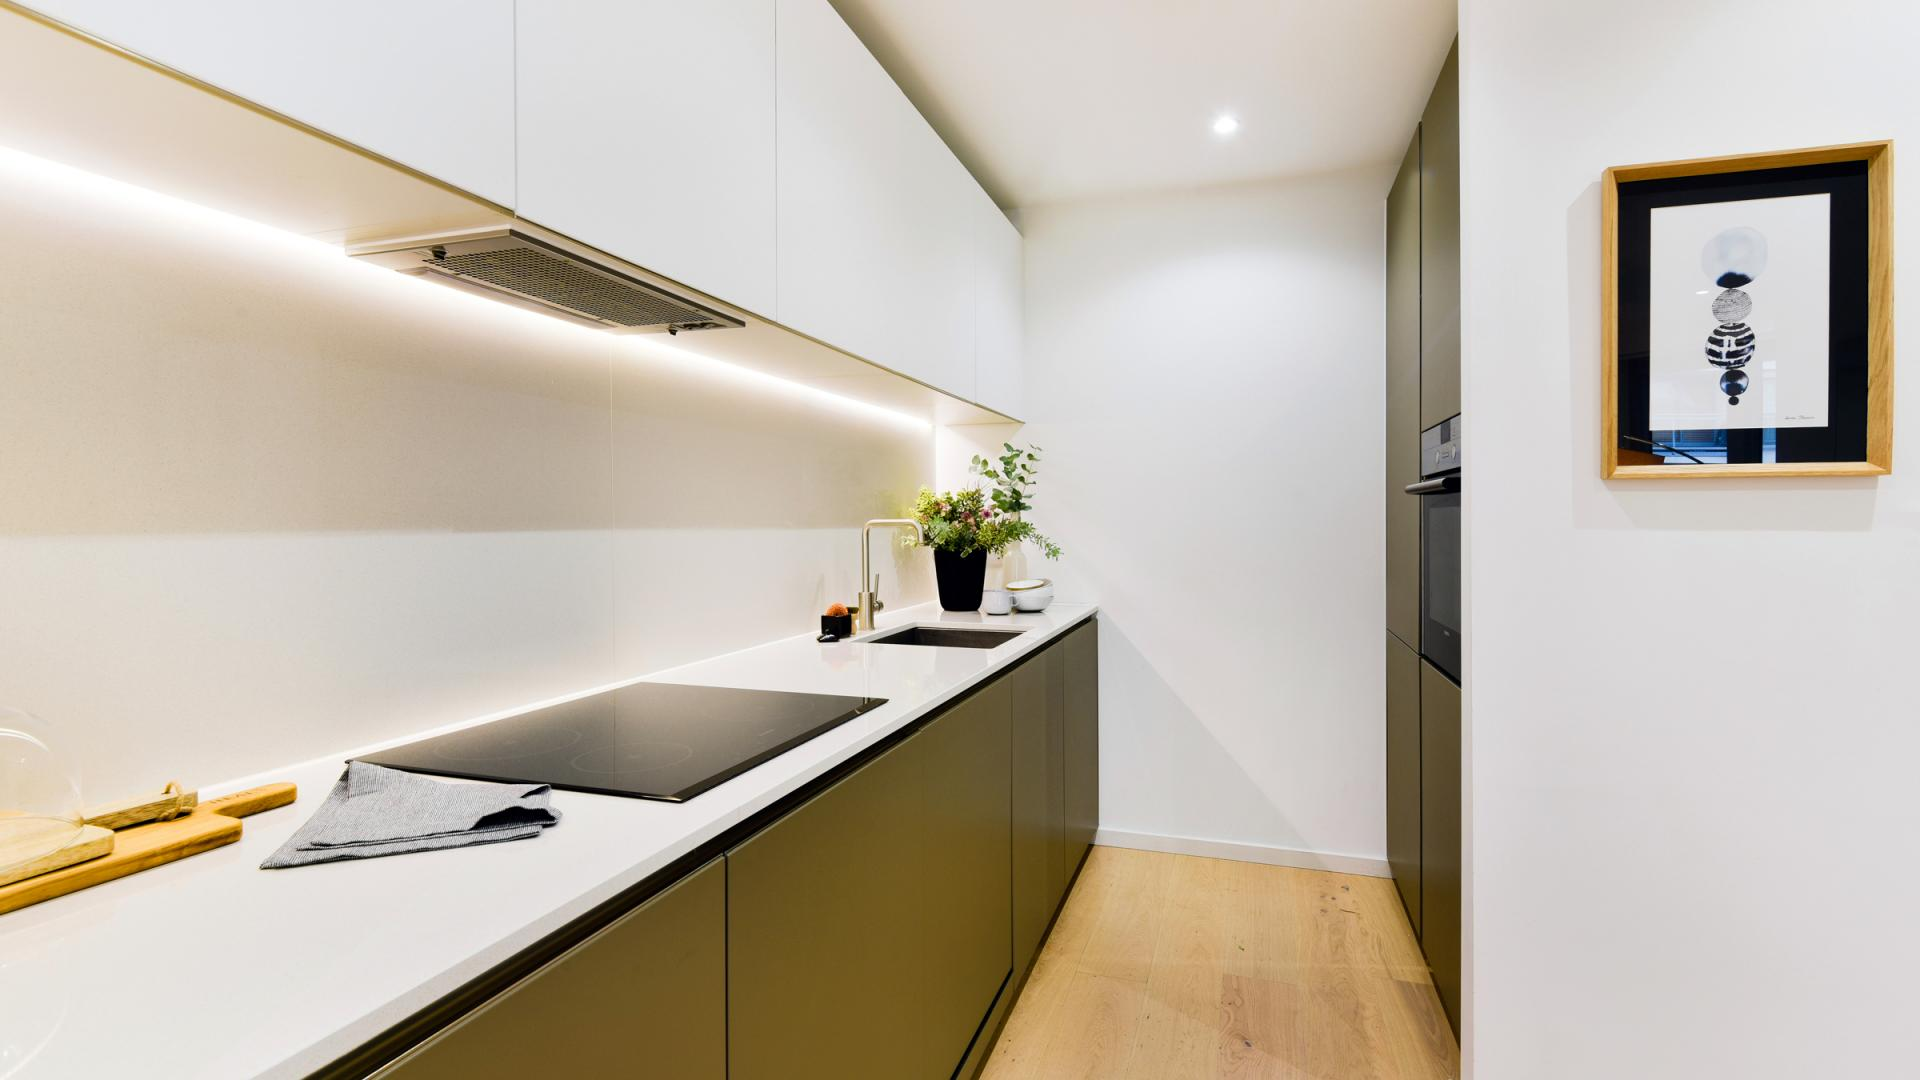 Kitchen at Clapham South 1 Apartment